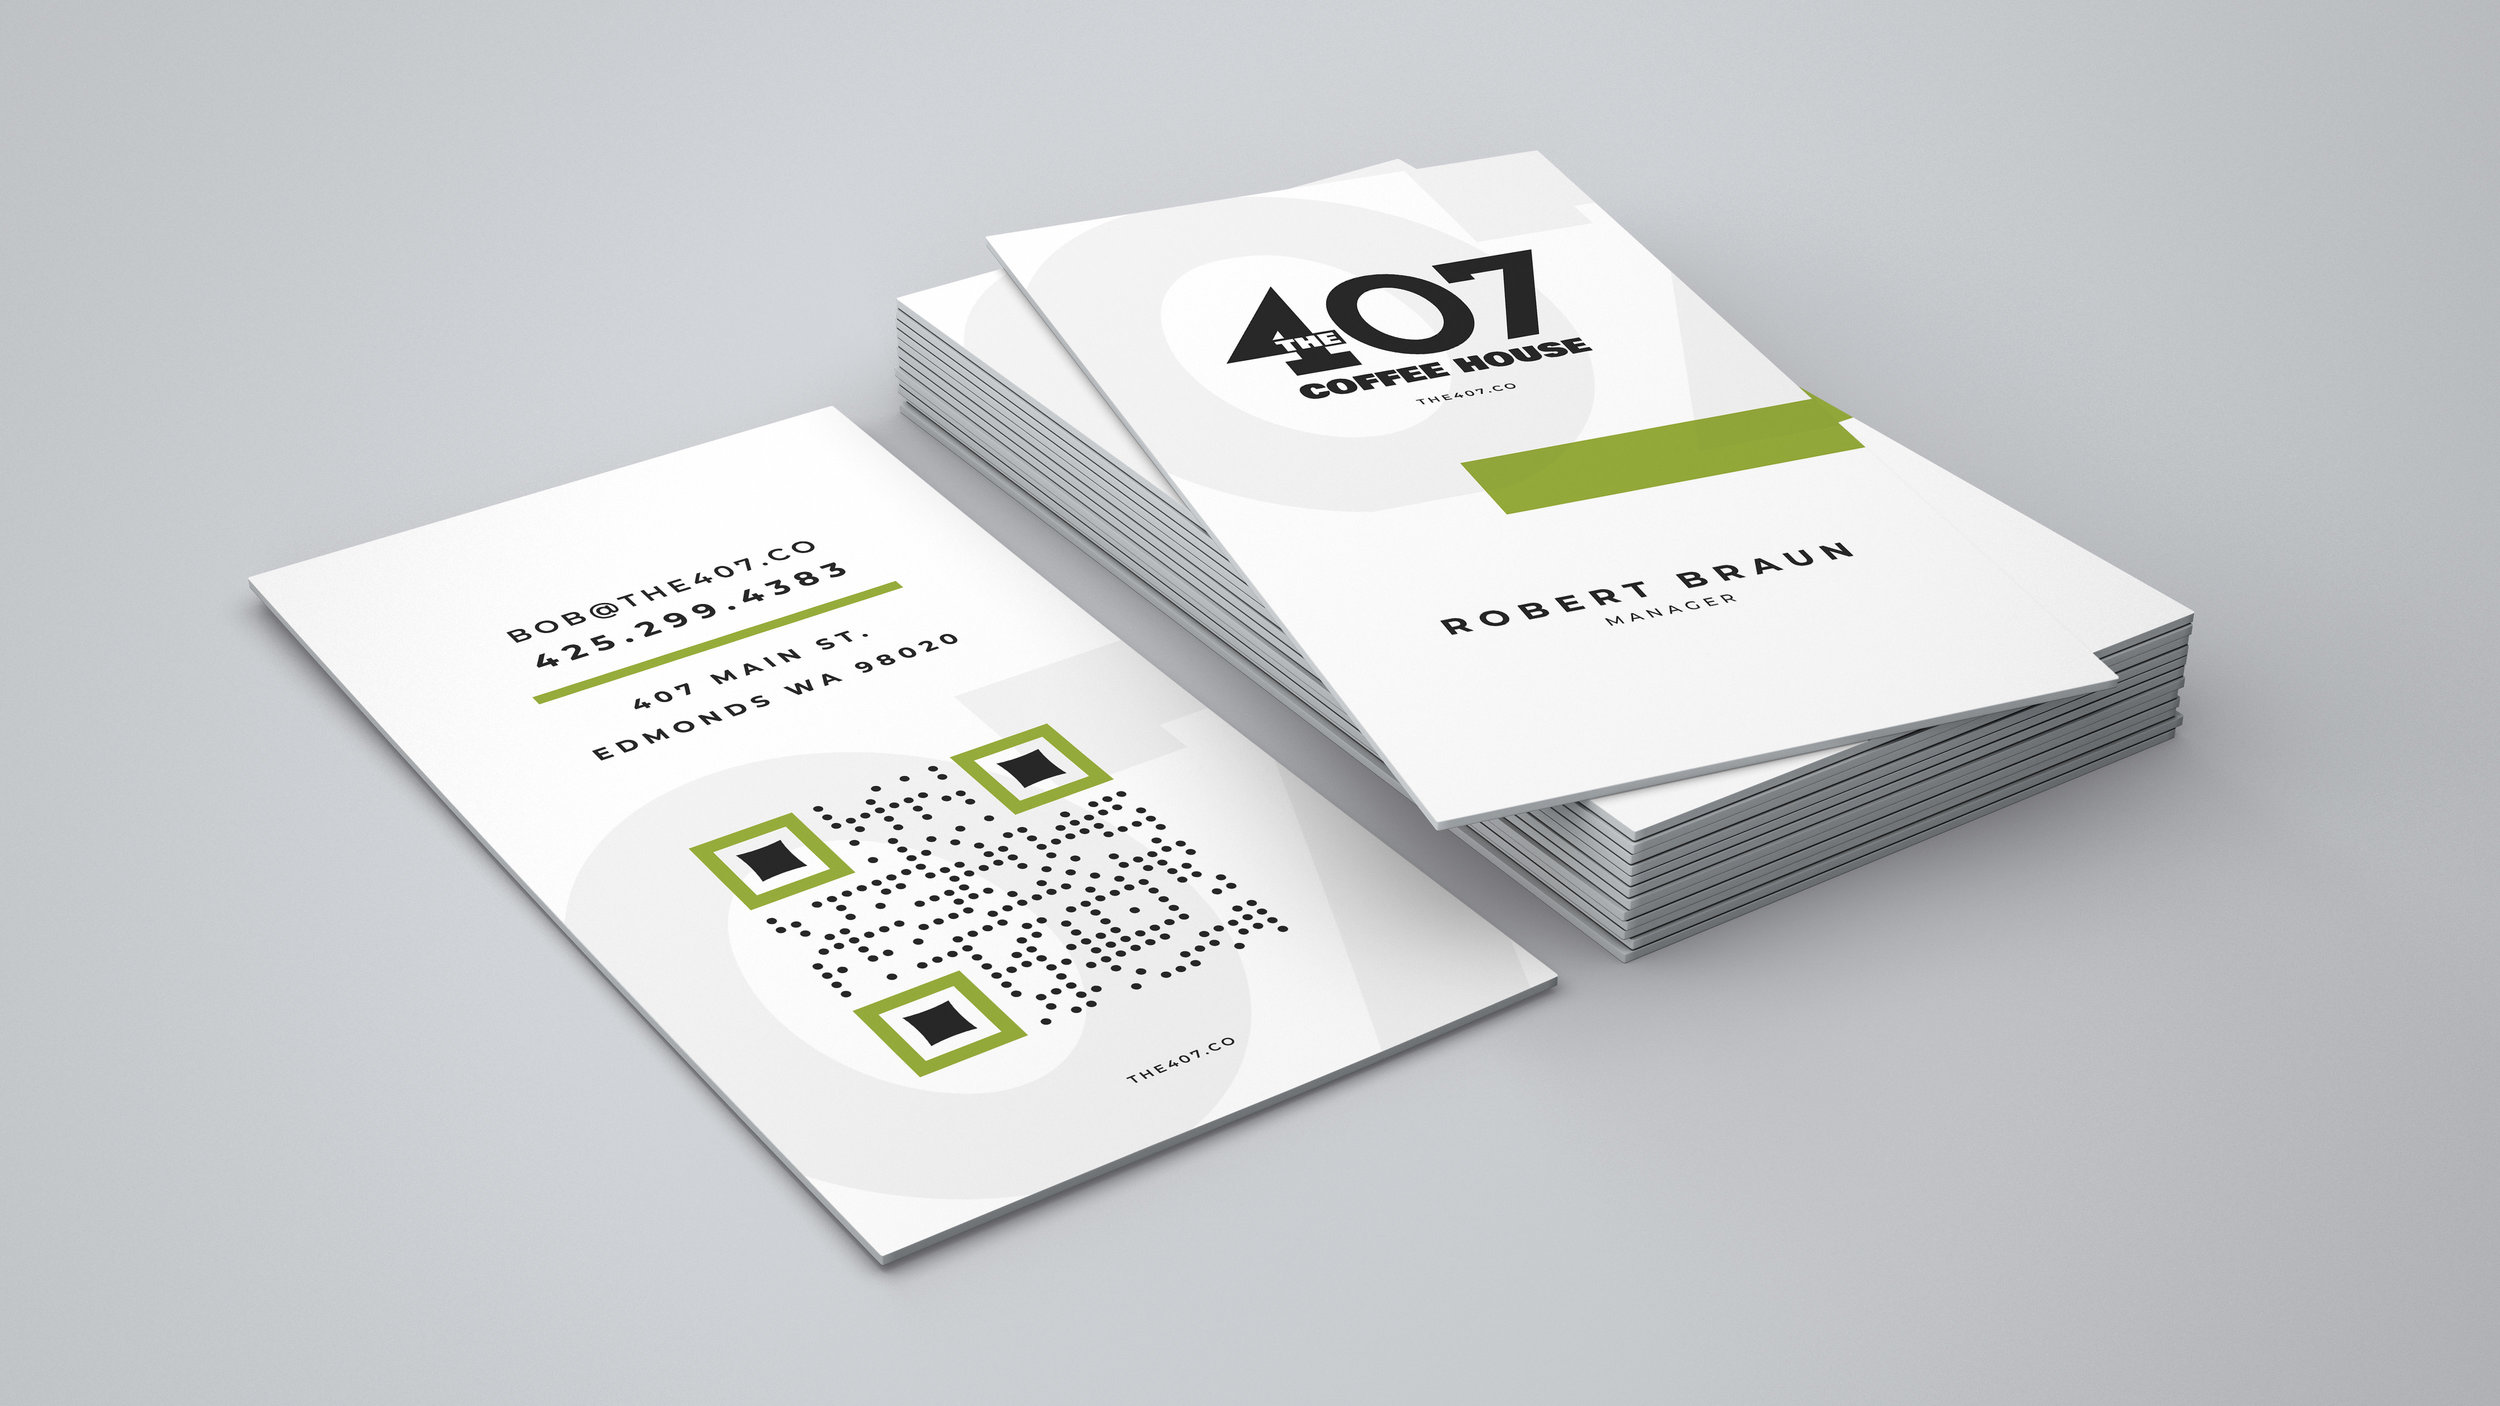 407 Business Cards Mockup.jpg